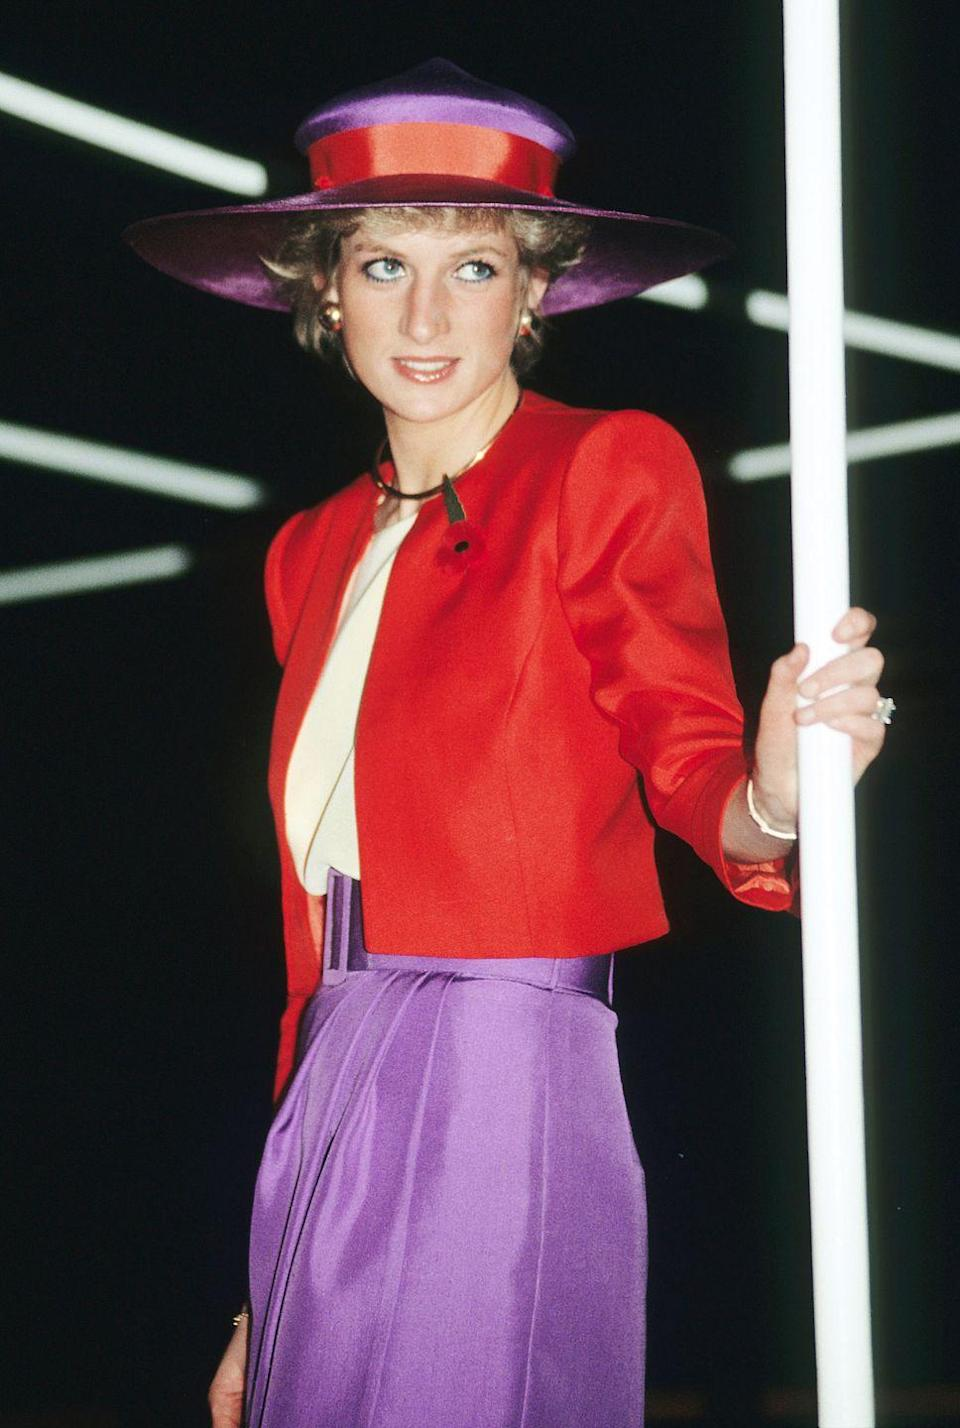 <p>Though many have tried, few have been able to match Princess Diana's matching hat and outfit game. During a visit to Hong Kong, her talent was on full display. <br></p>